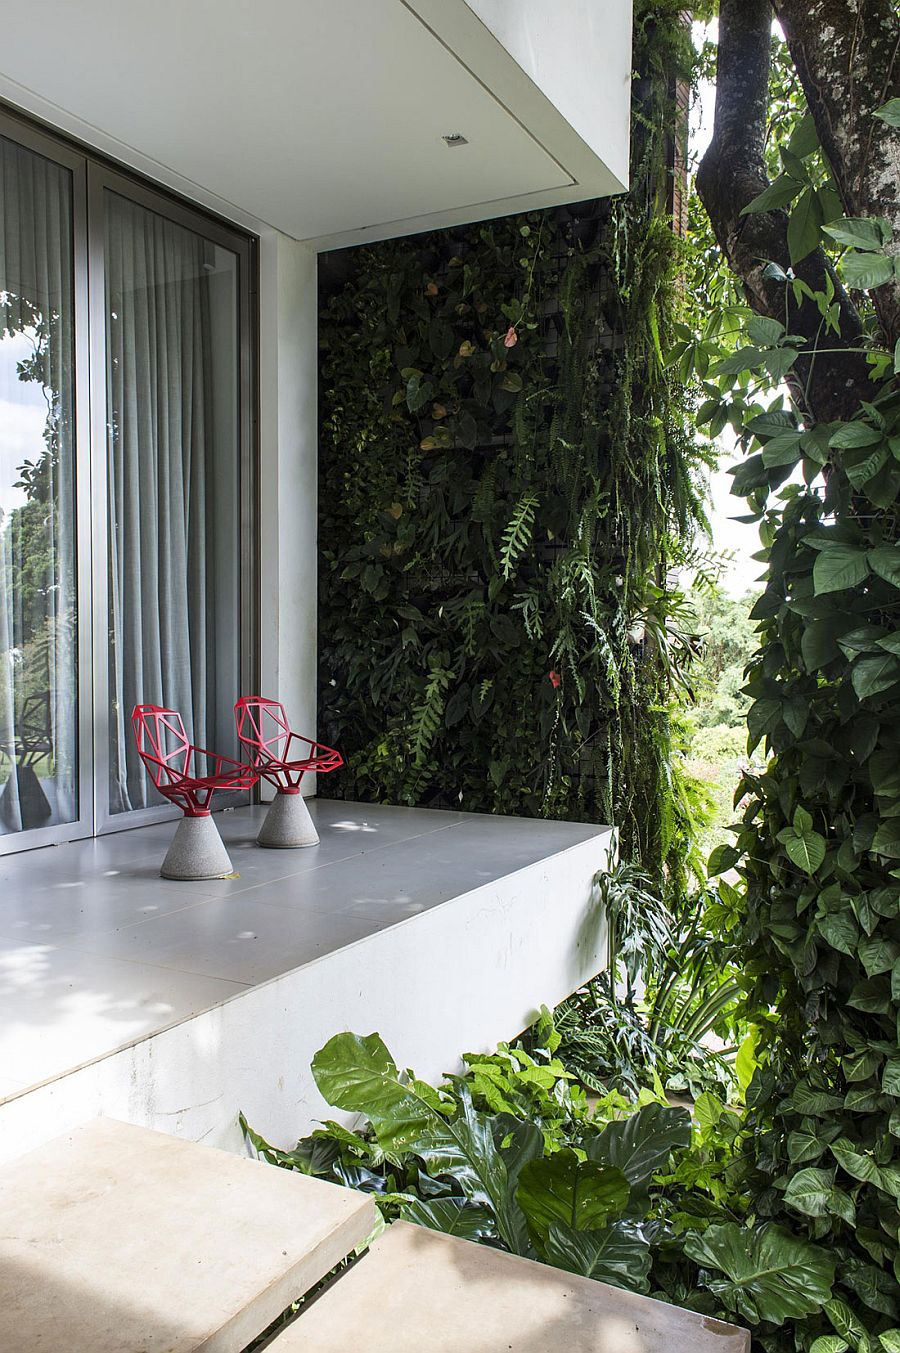 Natural greenery covers the contemporary home and extends indoors